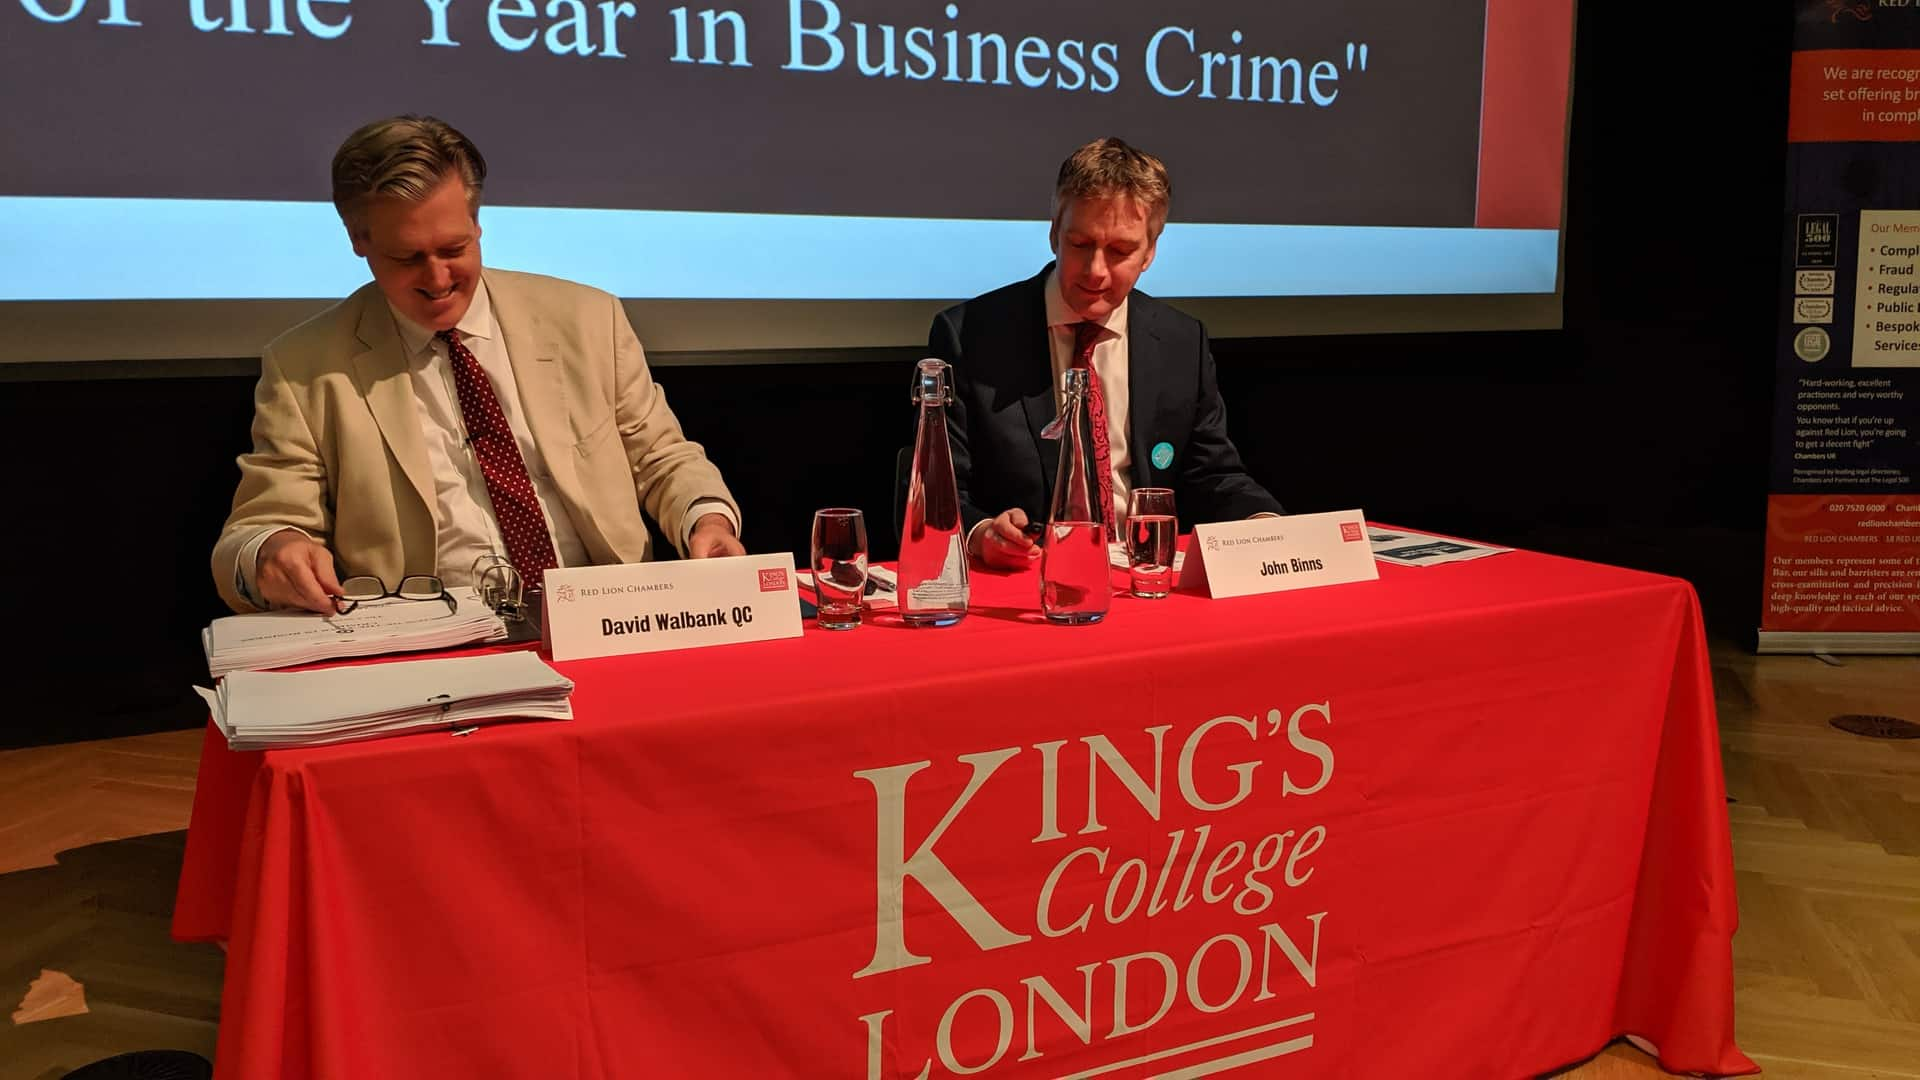 David Walbank QC and John Binns of BCL Solicitors LLP present their 'Review of the Year in Business Crime'